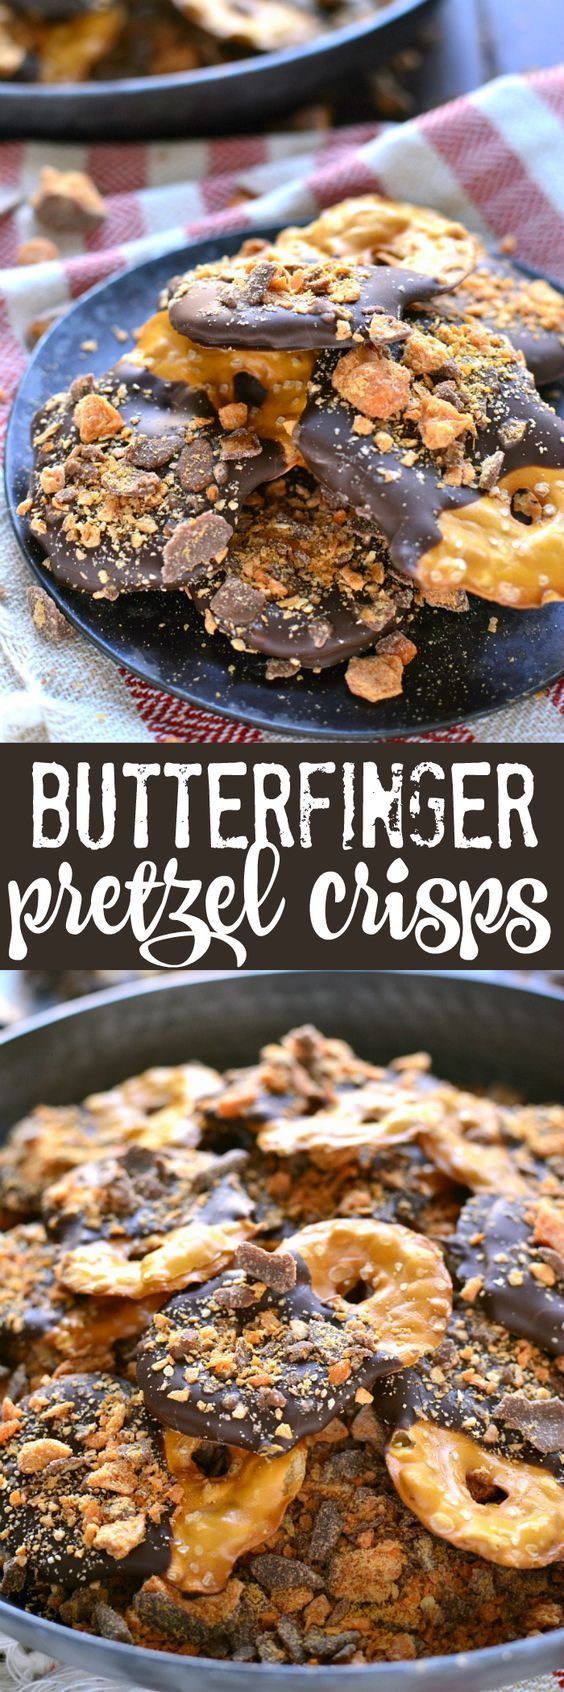 These Butterfinger Pretzel Crisps combine salty pretzel crisps with milk chocolate, a hint of rum extract, and BUTTERFINGERS! You better believe these will become your new favorite snack!: